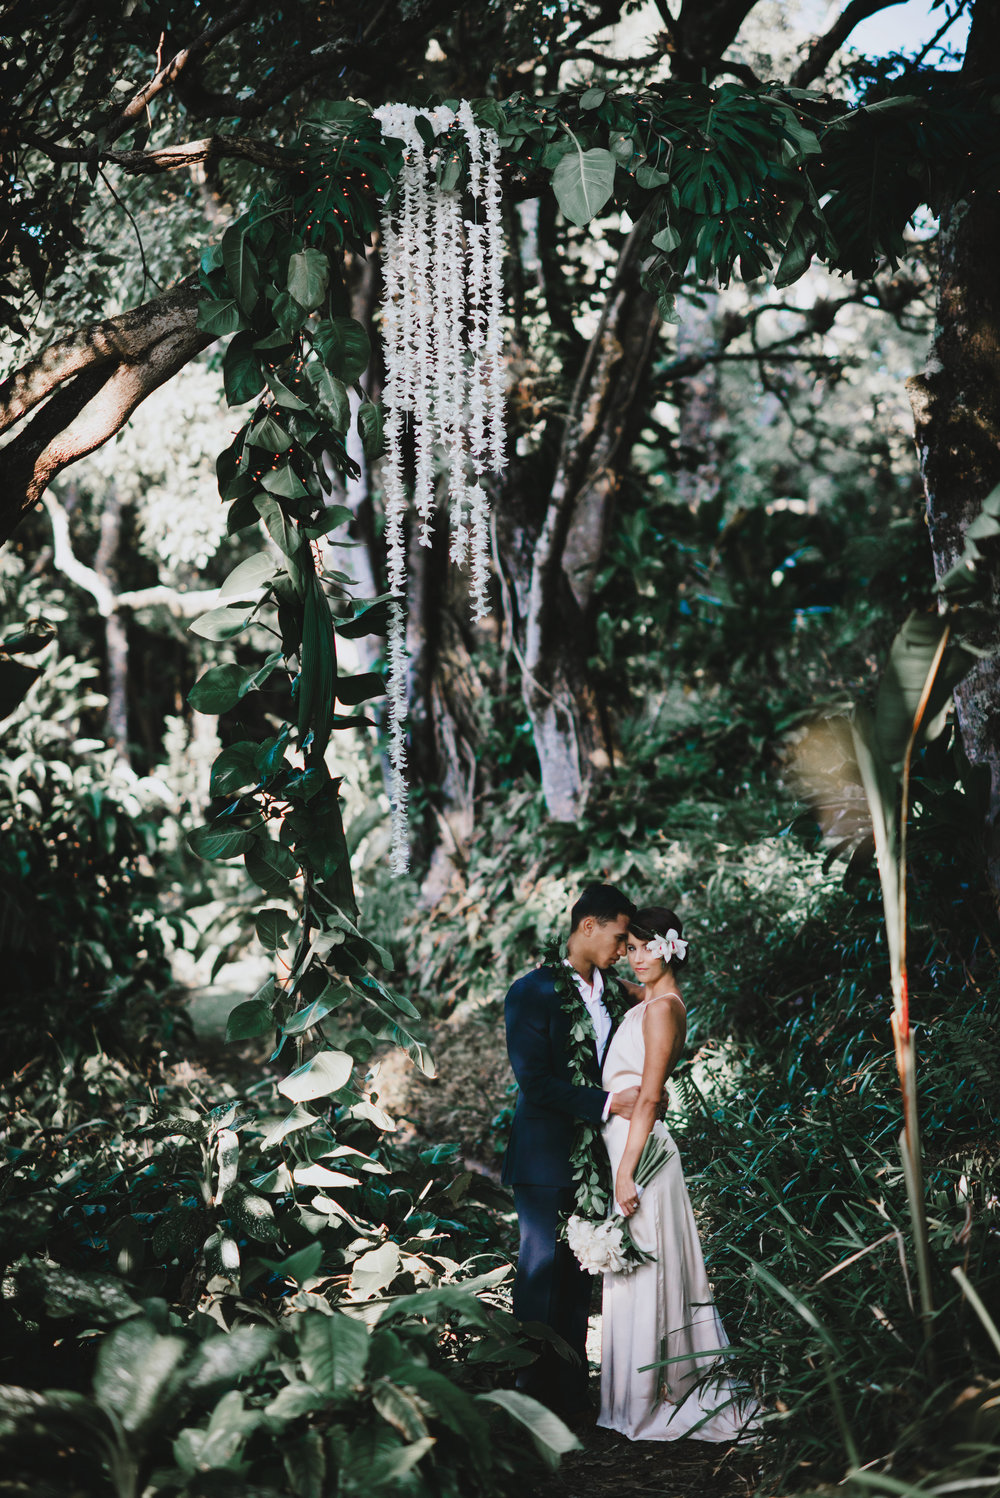 VSCO_Hawaii_Wedding_Photography_June_Cochran_136_6894.jpg